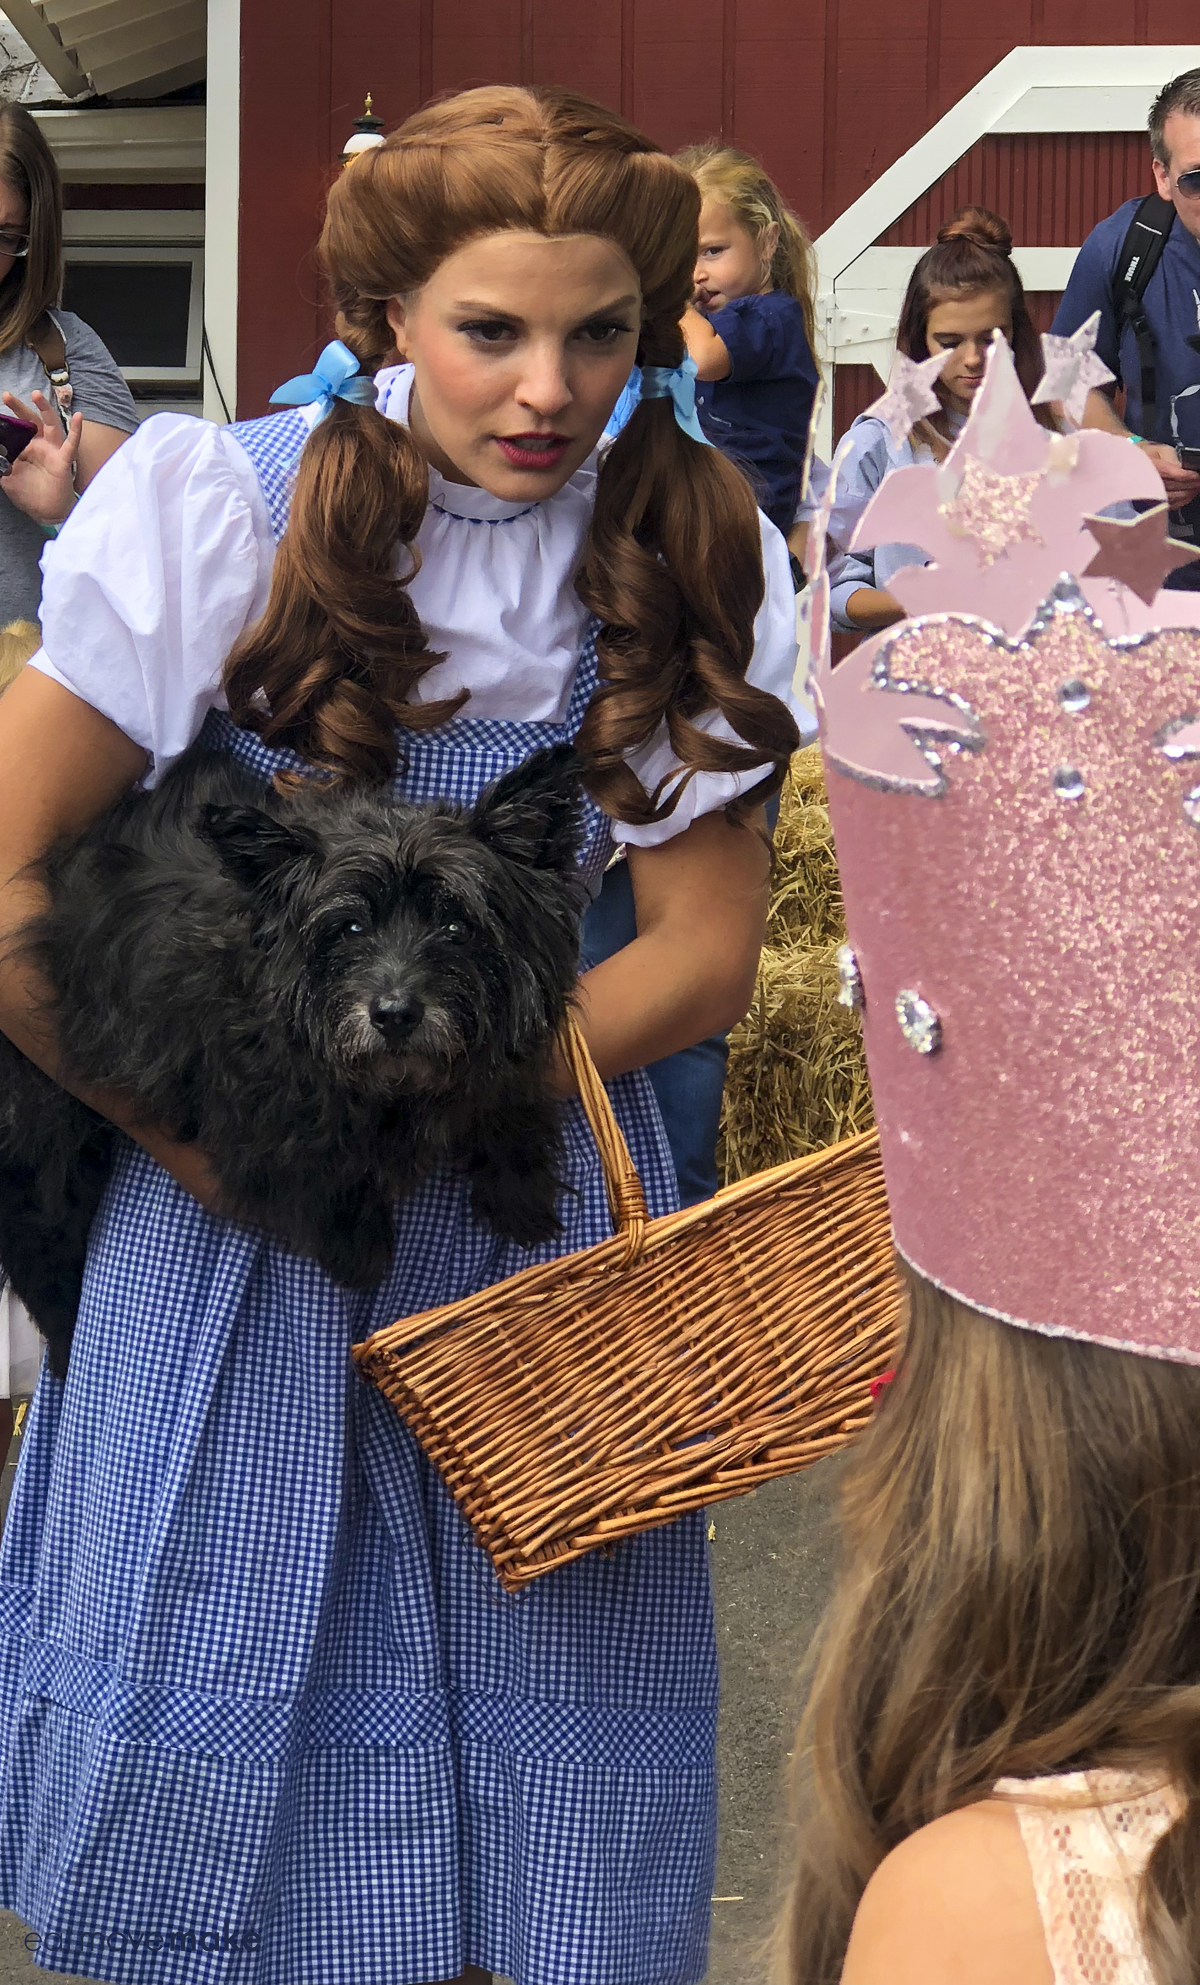 Dorothy and Toto talking to child